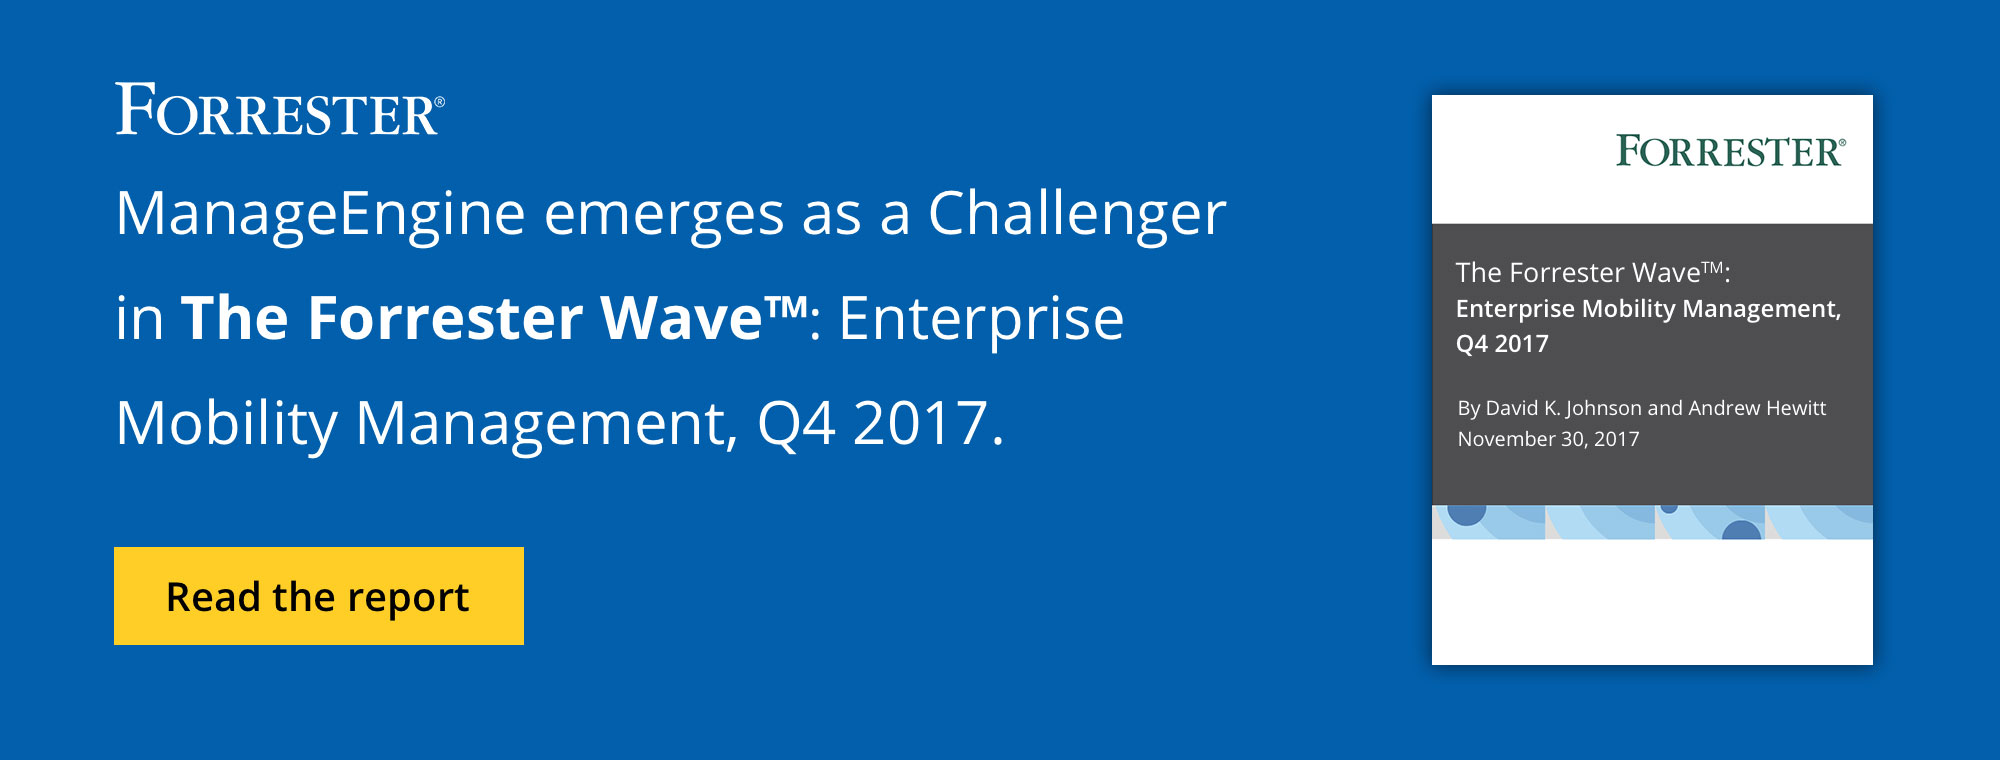 ManageEngine emerge como un Challenger en The Forrester Wave ™: Enterprise Mobility Management, Q4 2017.